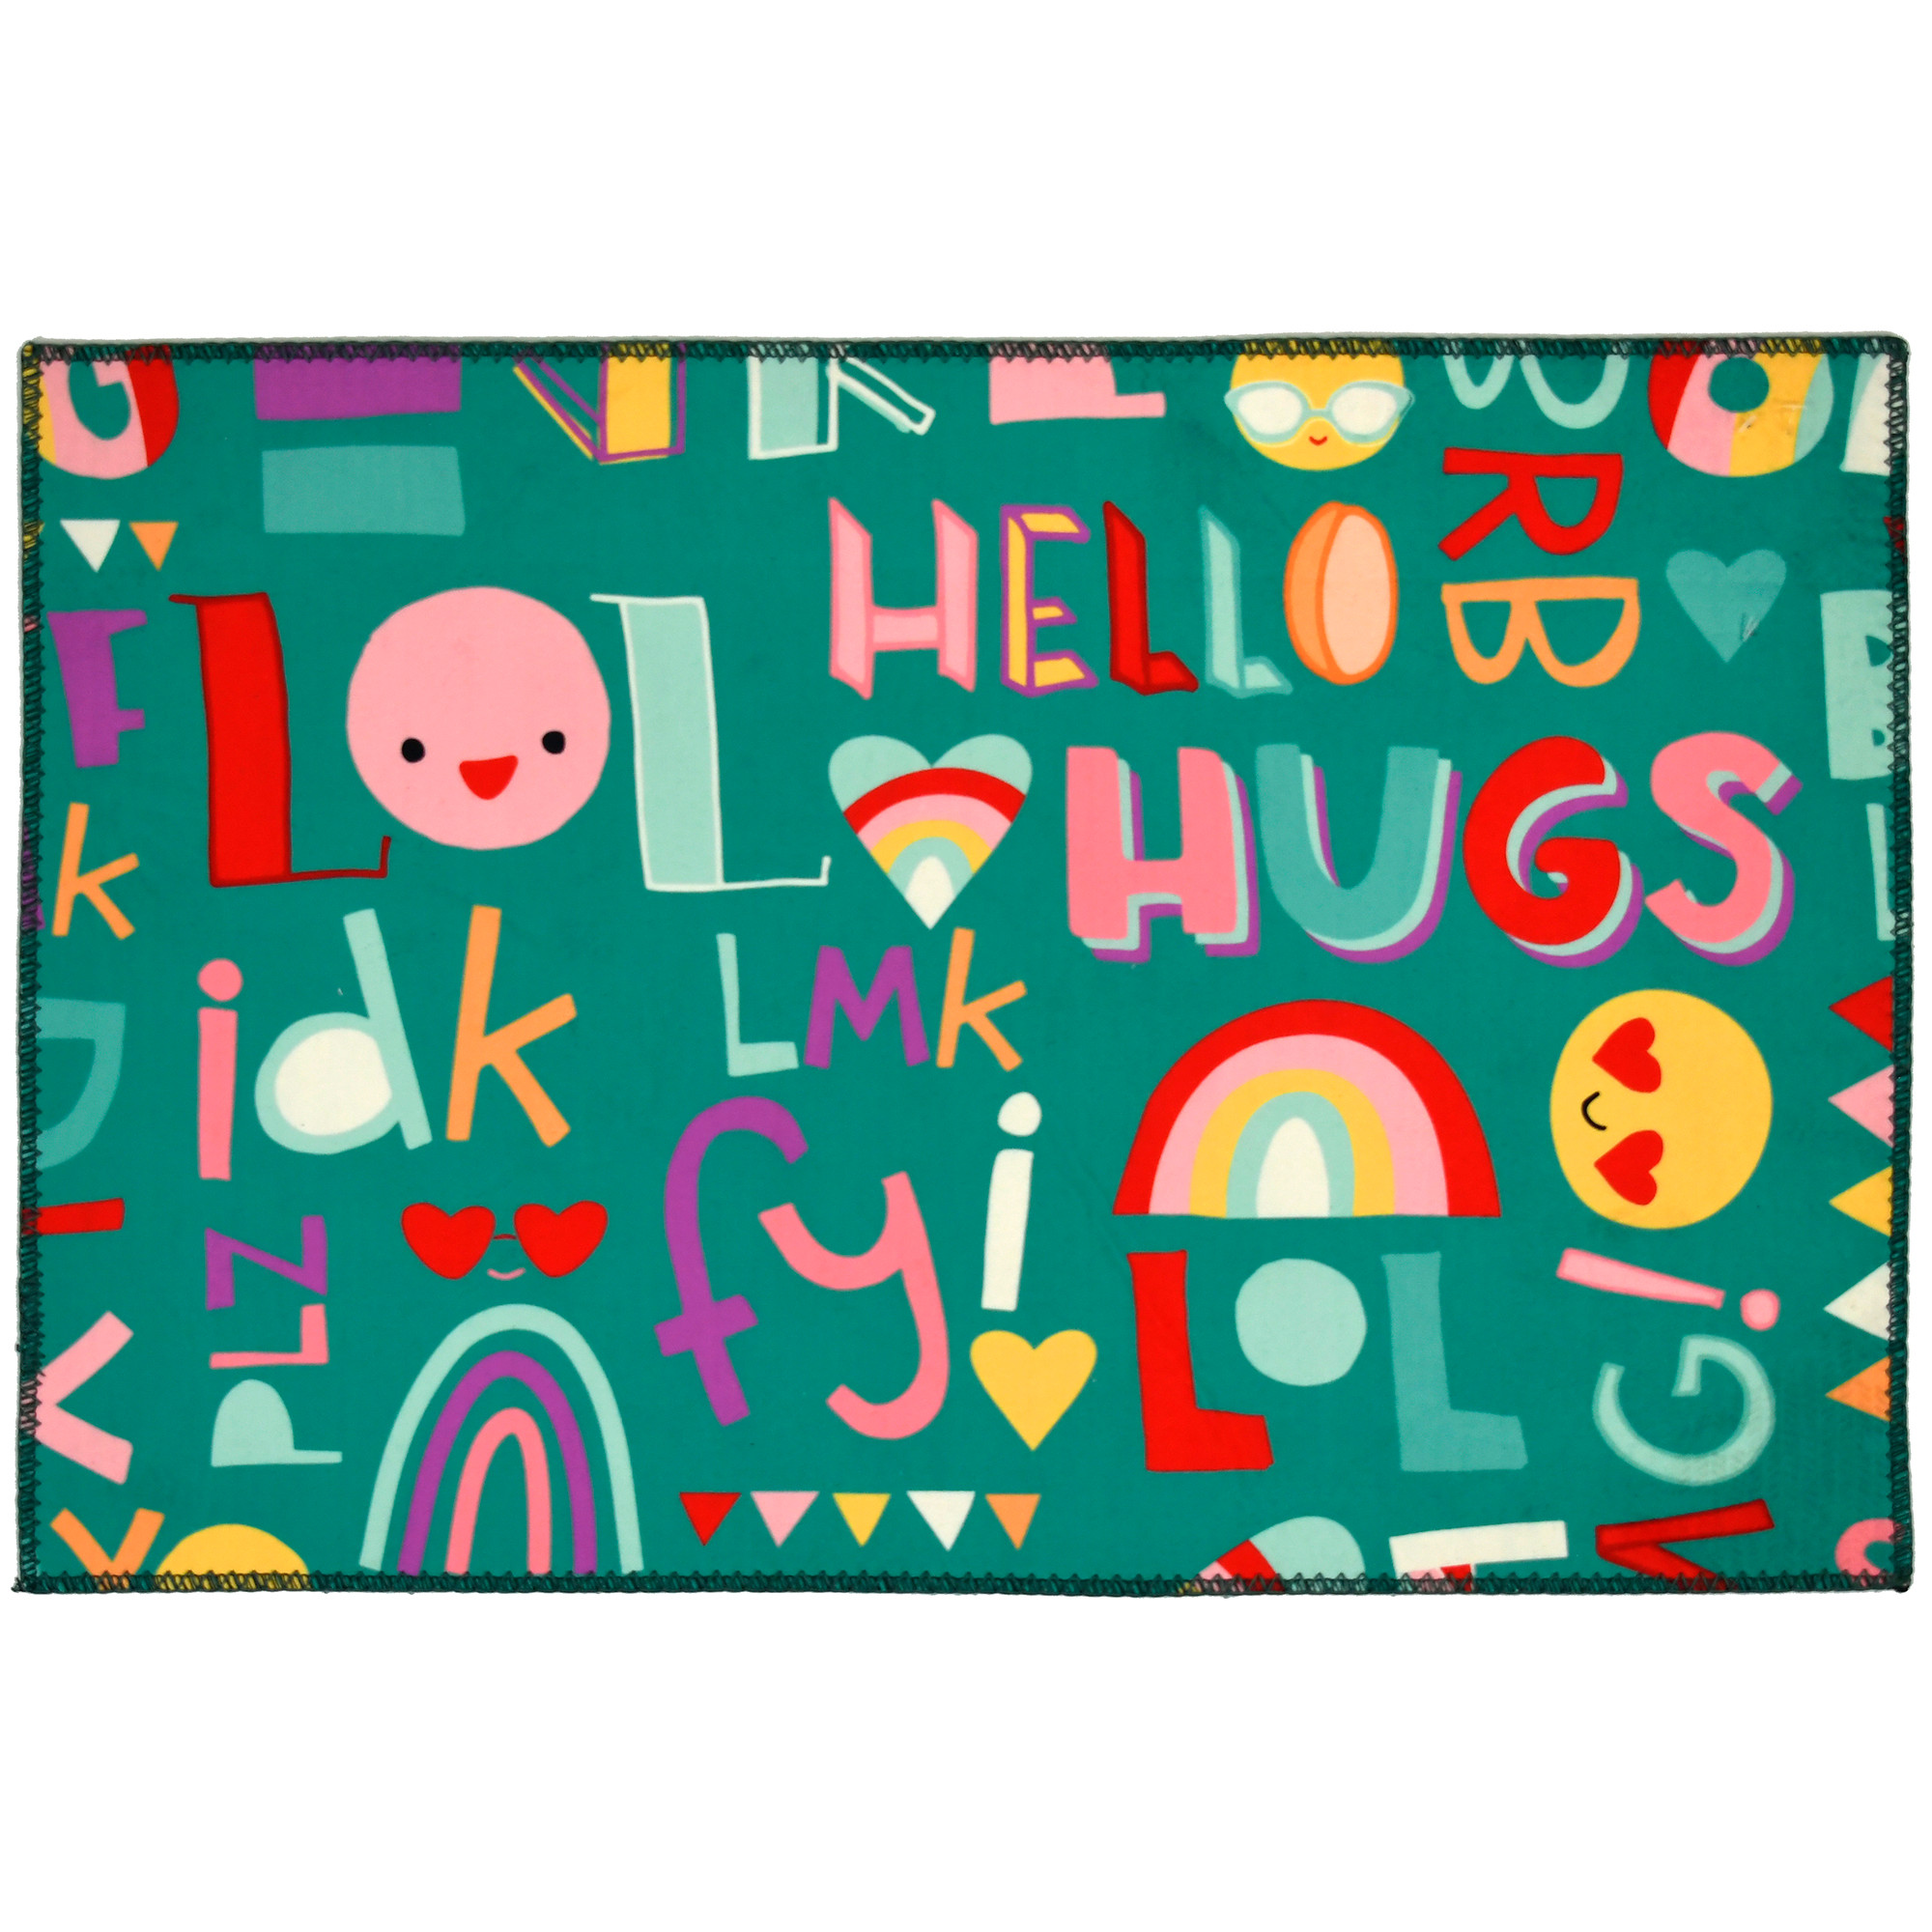 This Homefires by Jellybean® poly-suede floor cloth by Heather Rosas is all a buzz with incoming messages. Bright emojis and text are printed on this machine washable floor cloth. Available in four sizes, this floor cloth is thin enough to be used under furniture for maneuverability.